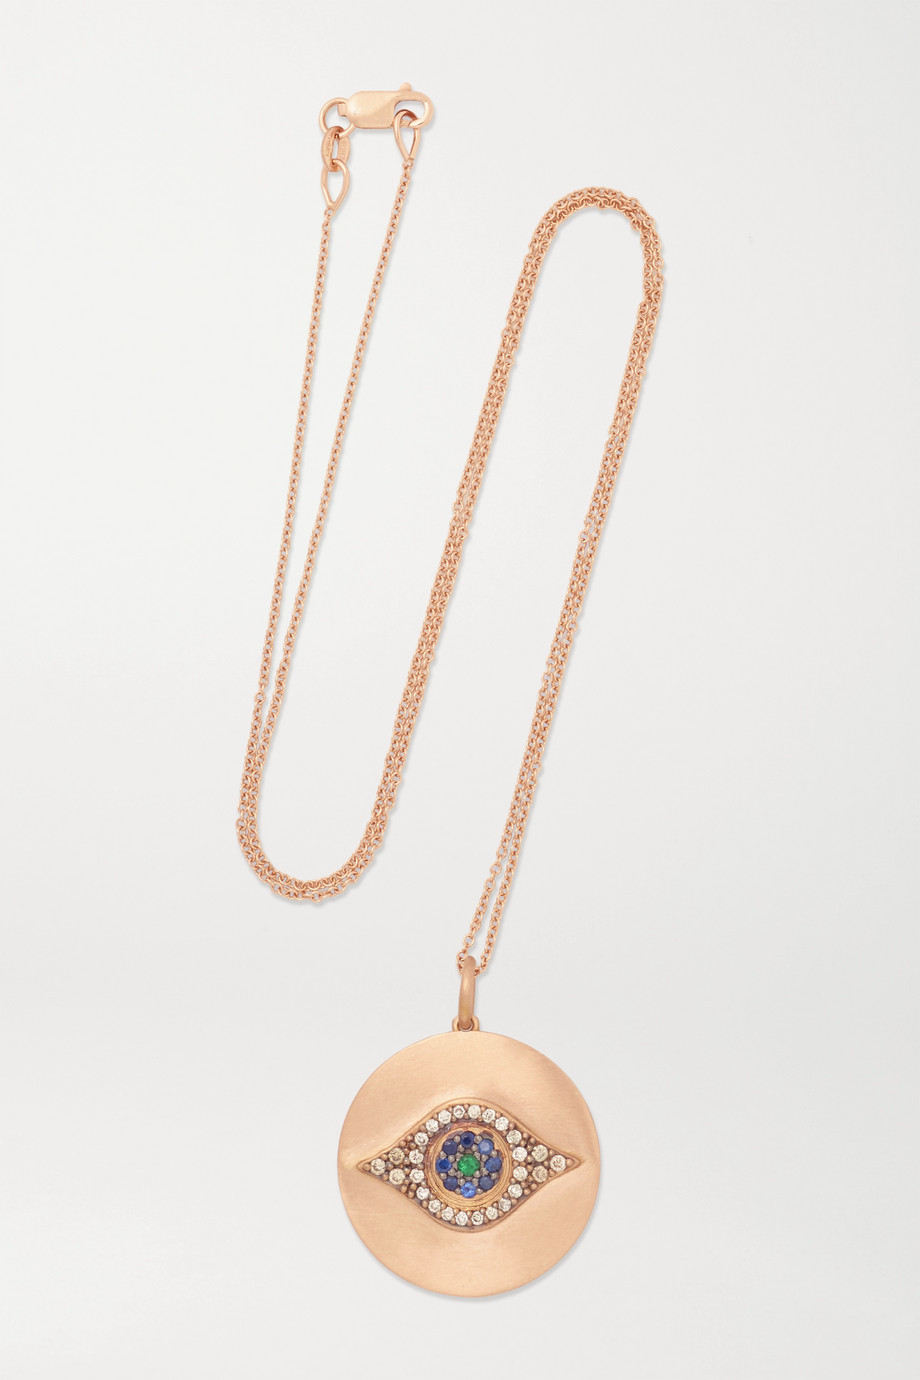 Ileana Makri Golden Dawn 18-karat rose gold multi-stone necklace